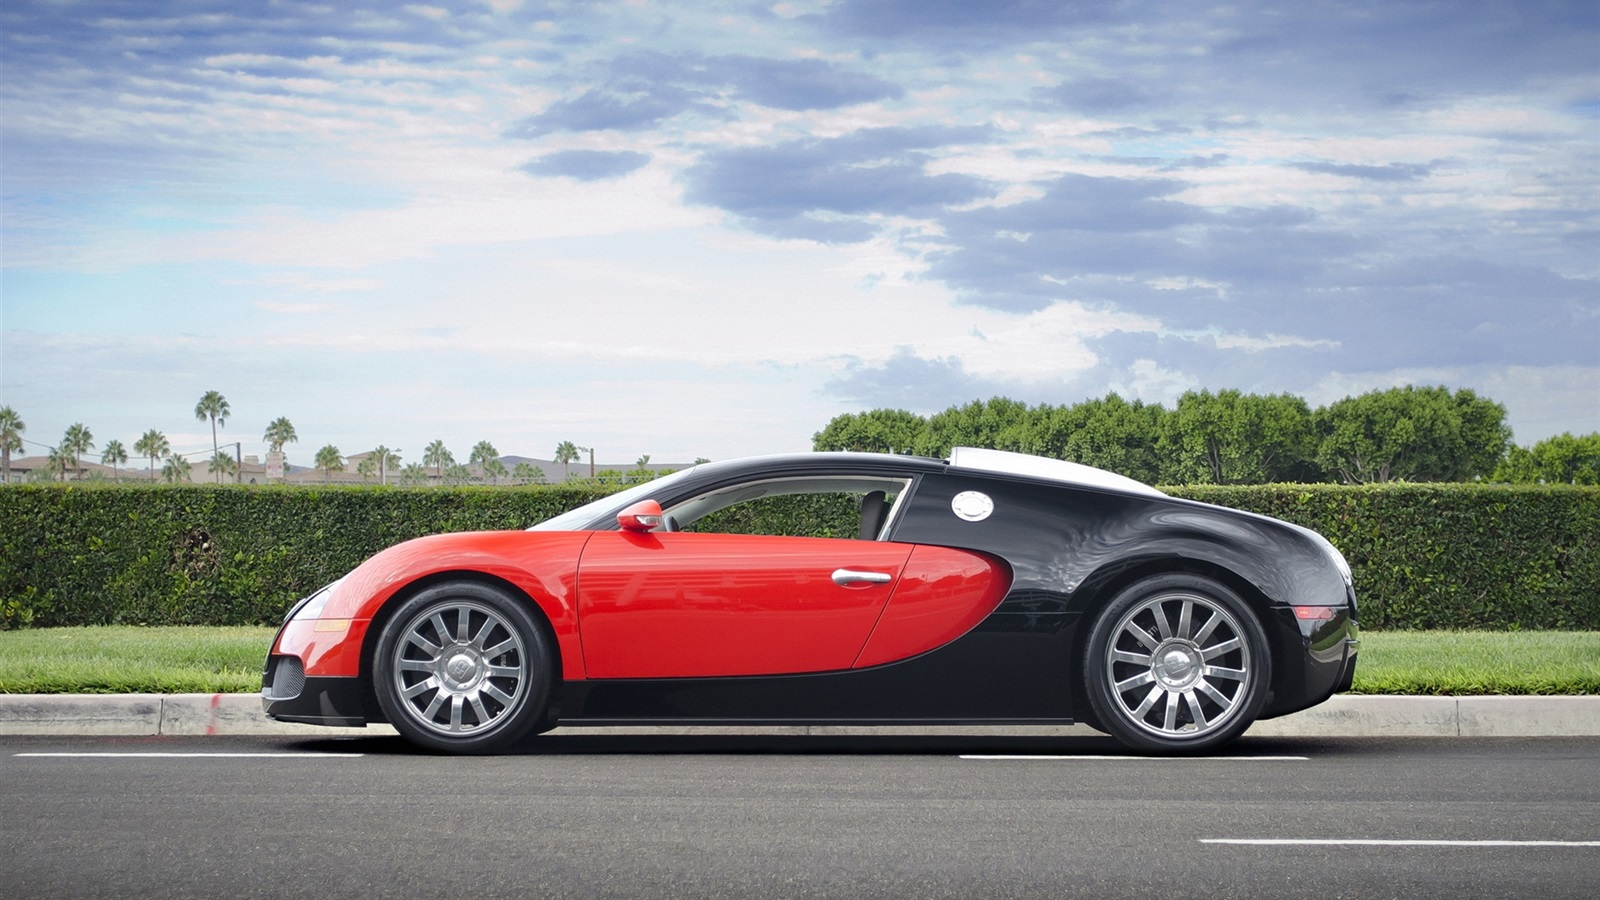 Red And Black Bugatti Bugatti Veyron Supersp...